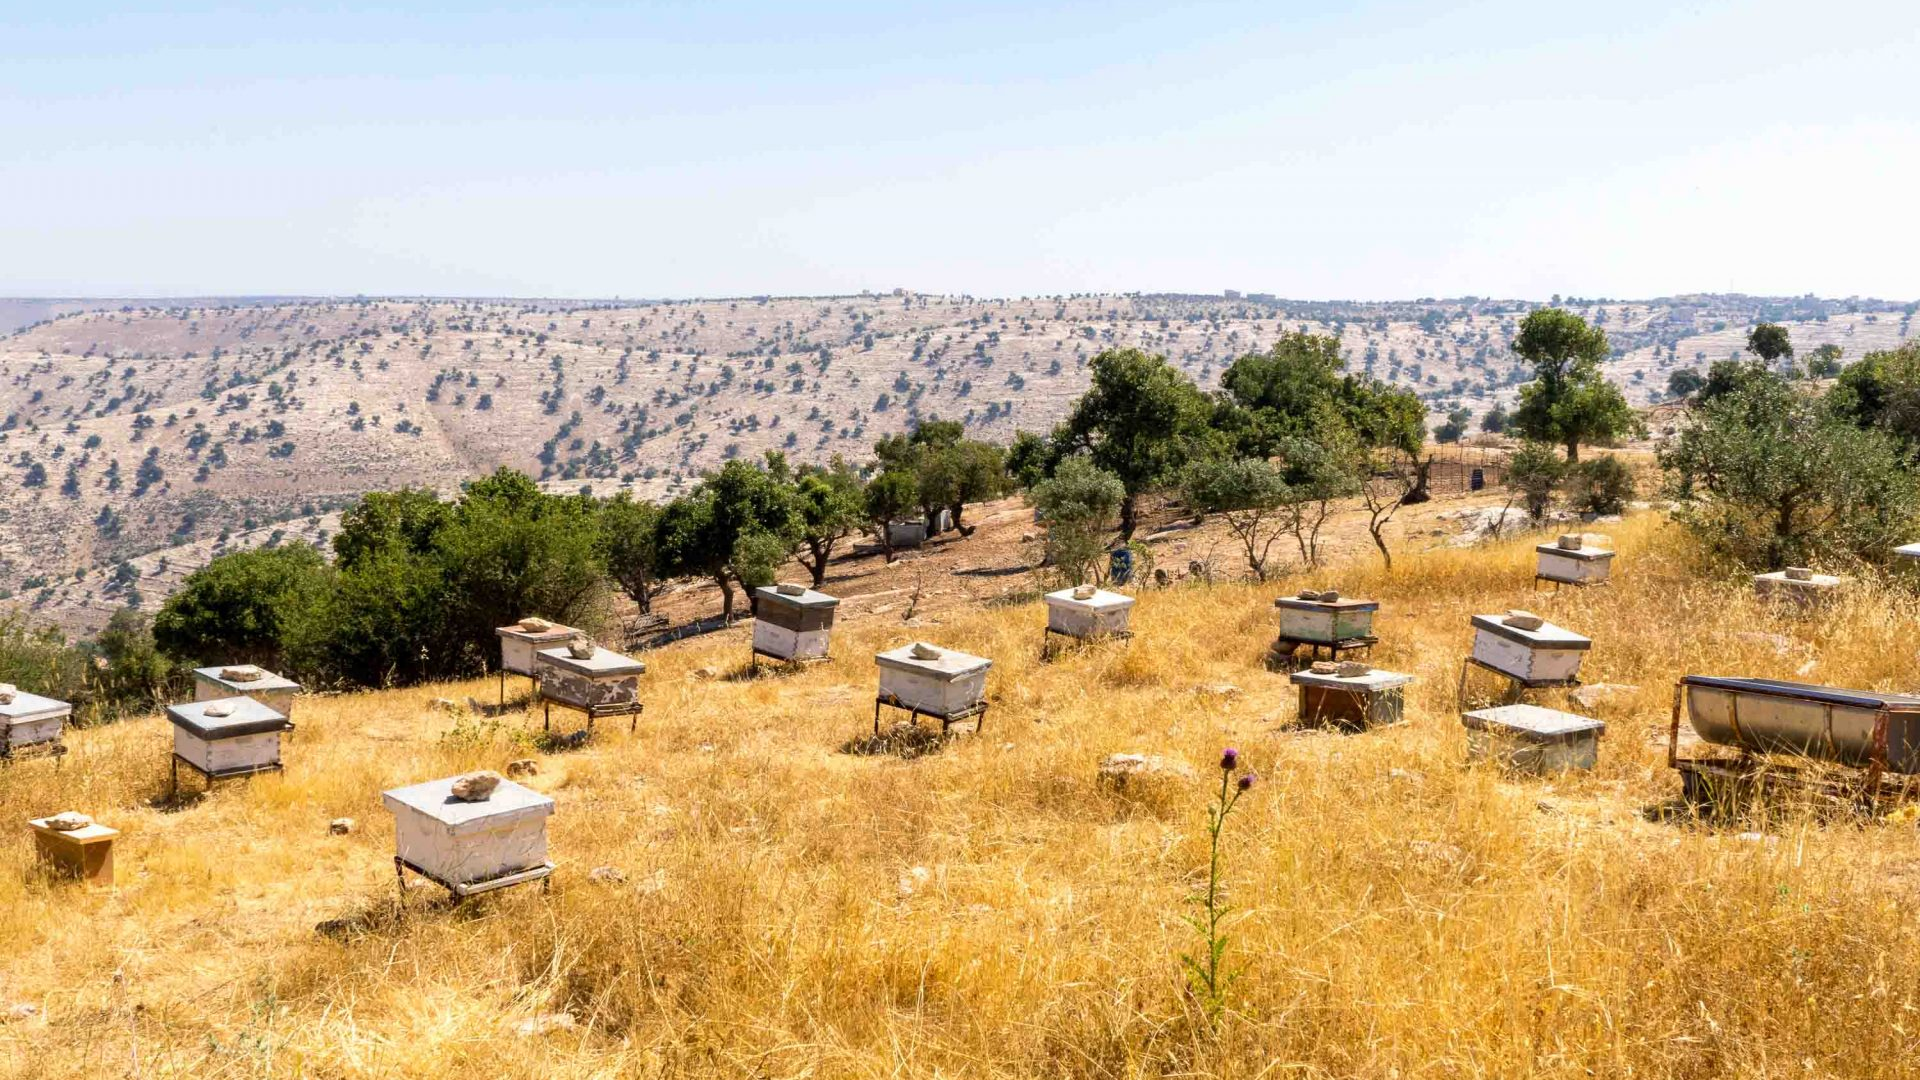 Yousef has at least 15 beehives housing roughly 60,000 bees located along the rolling hills in Umm Qais.